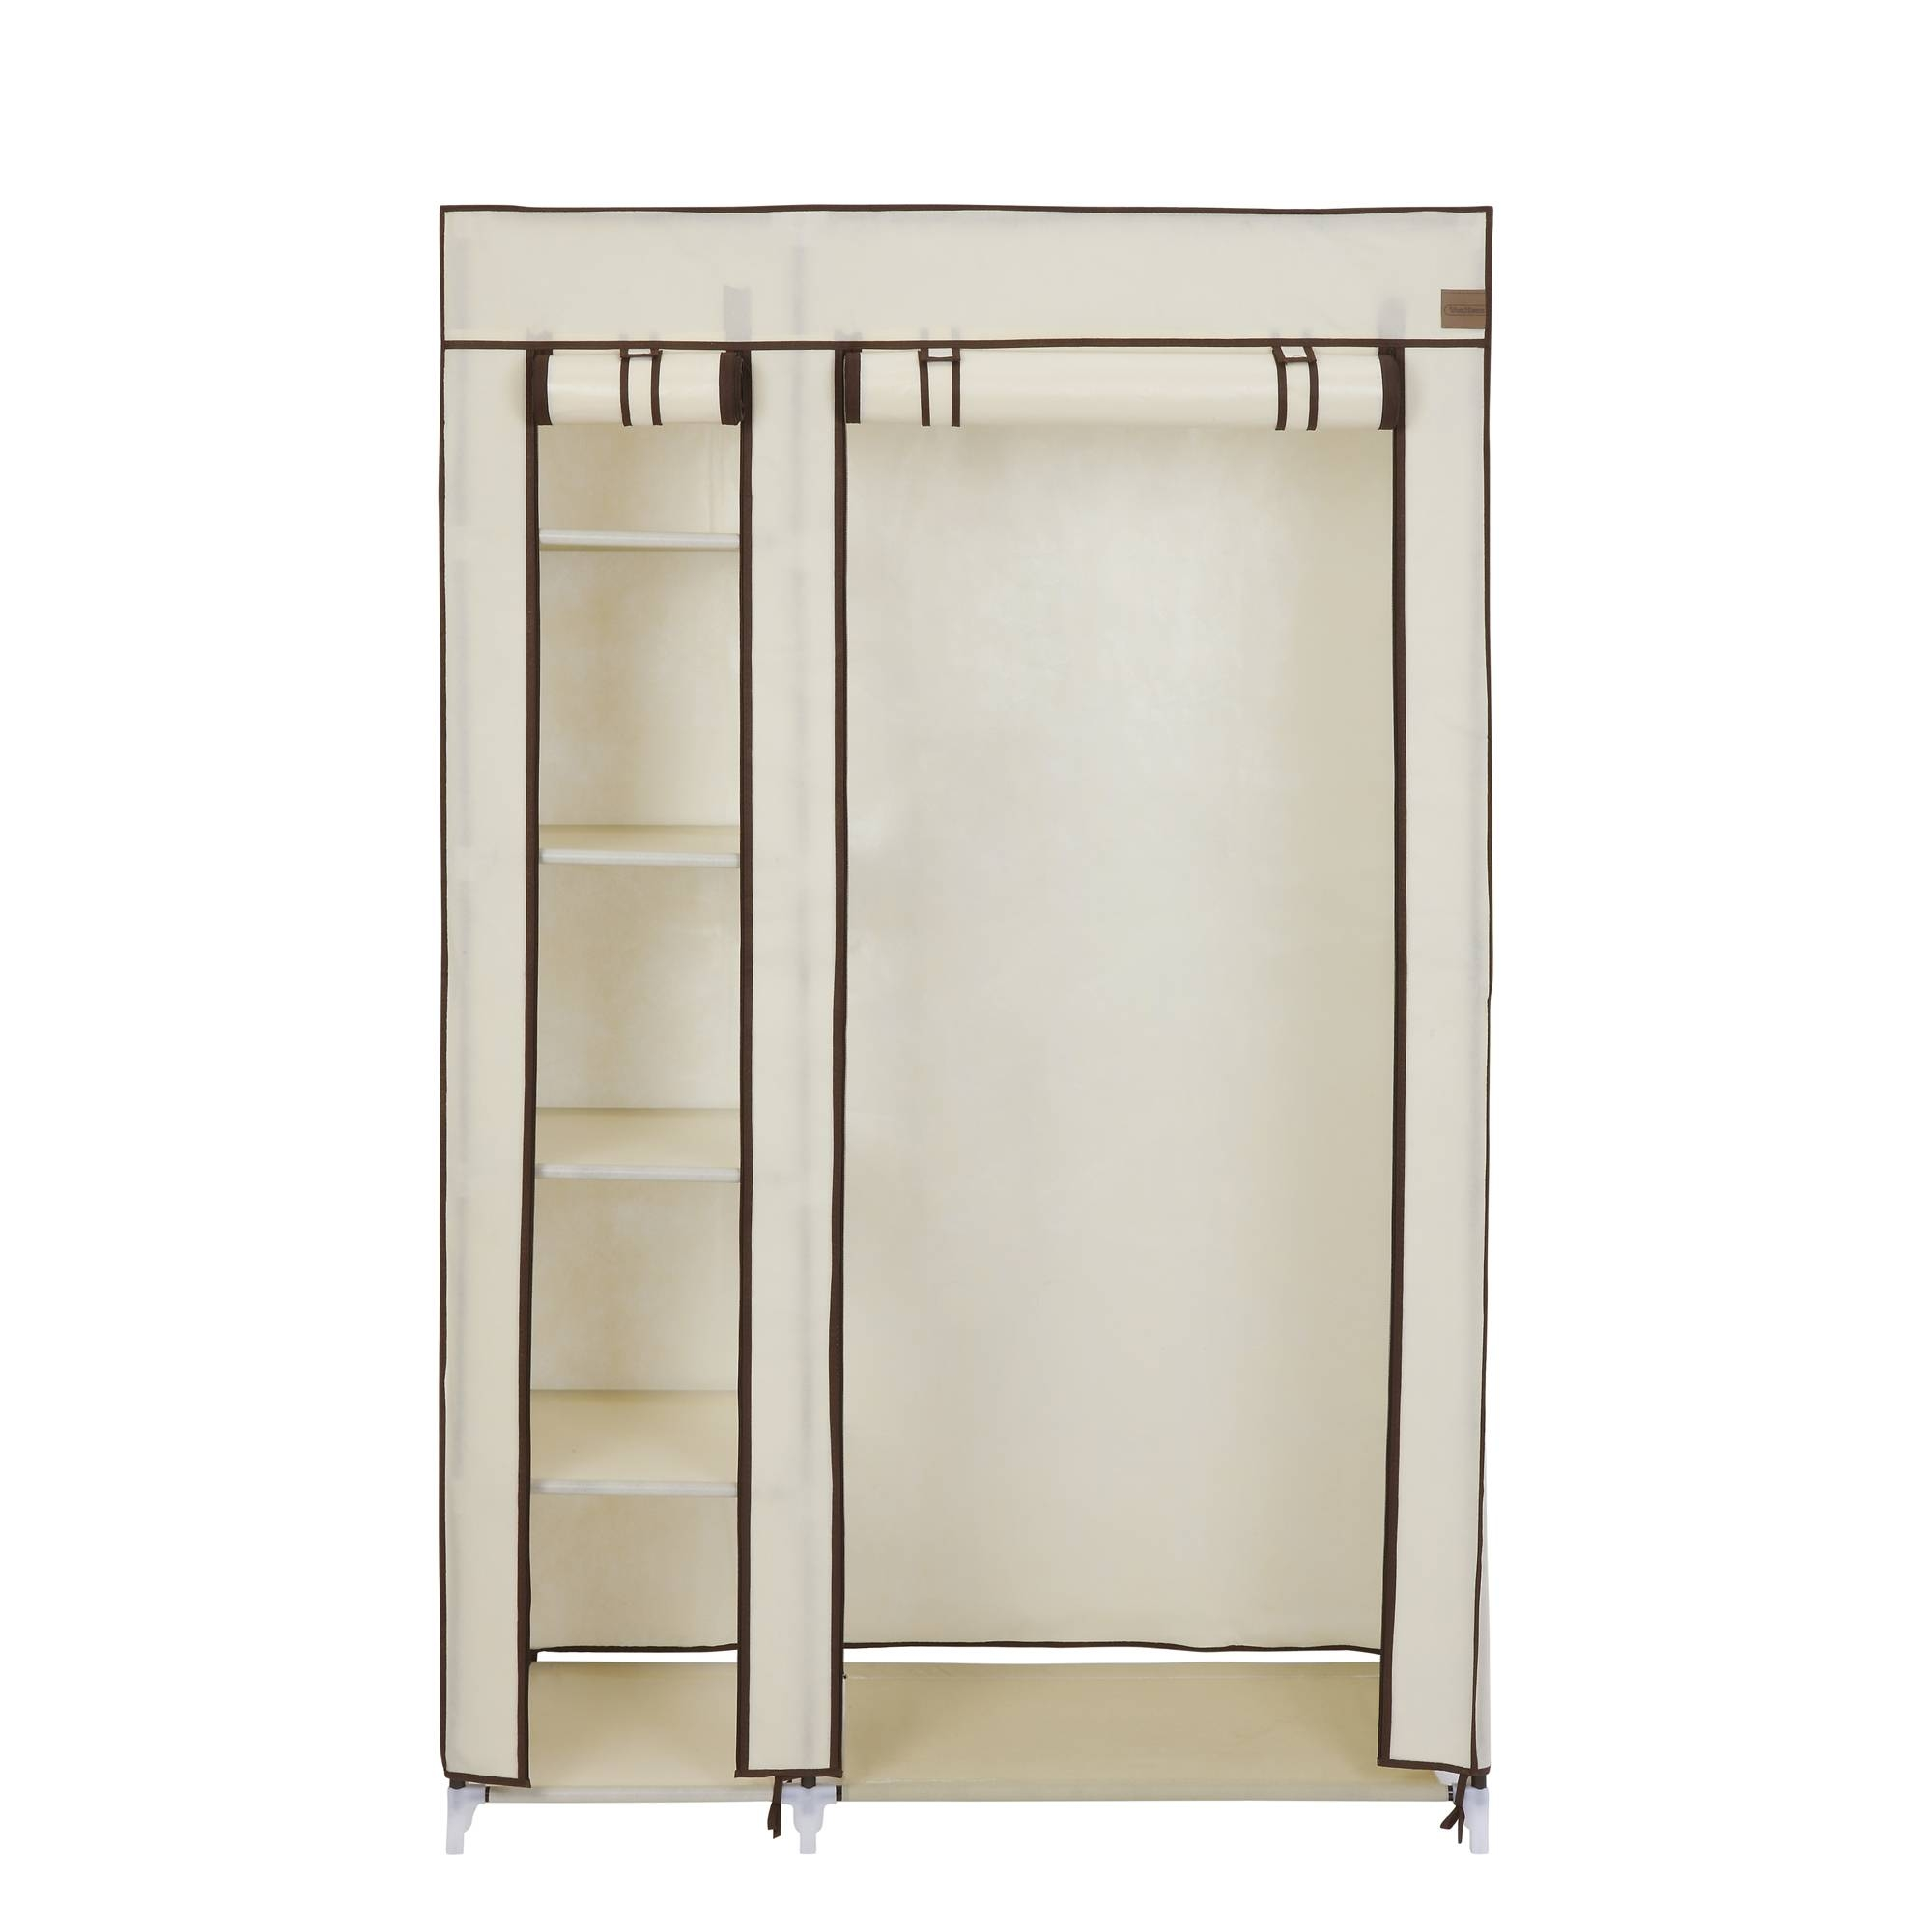 Vonhaus Double Canvas Effect Wardrobe Clothes Hanging Rail Shelves Throughout Double Hanging Rail Wardrobes (View 4 of 30)